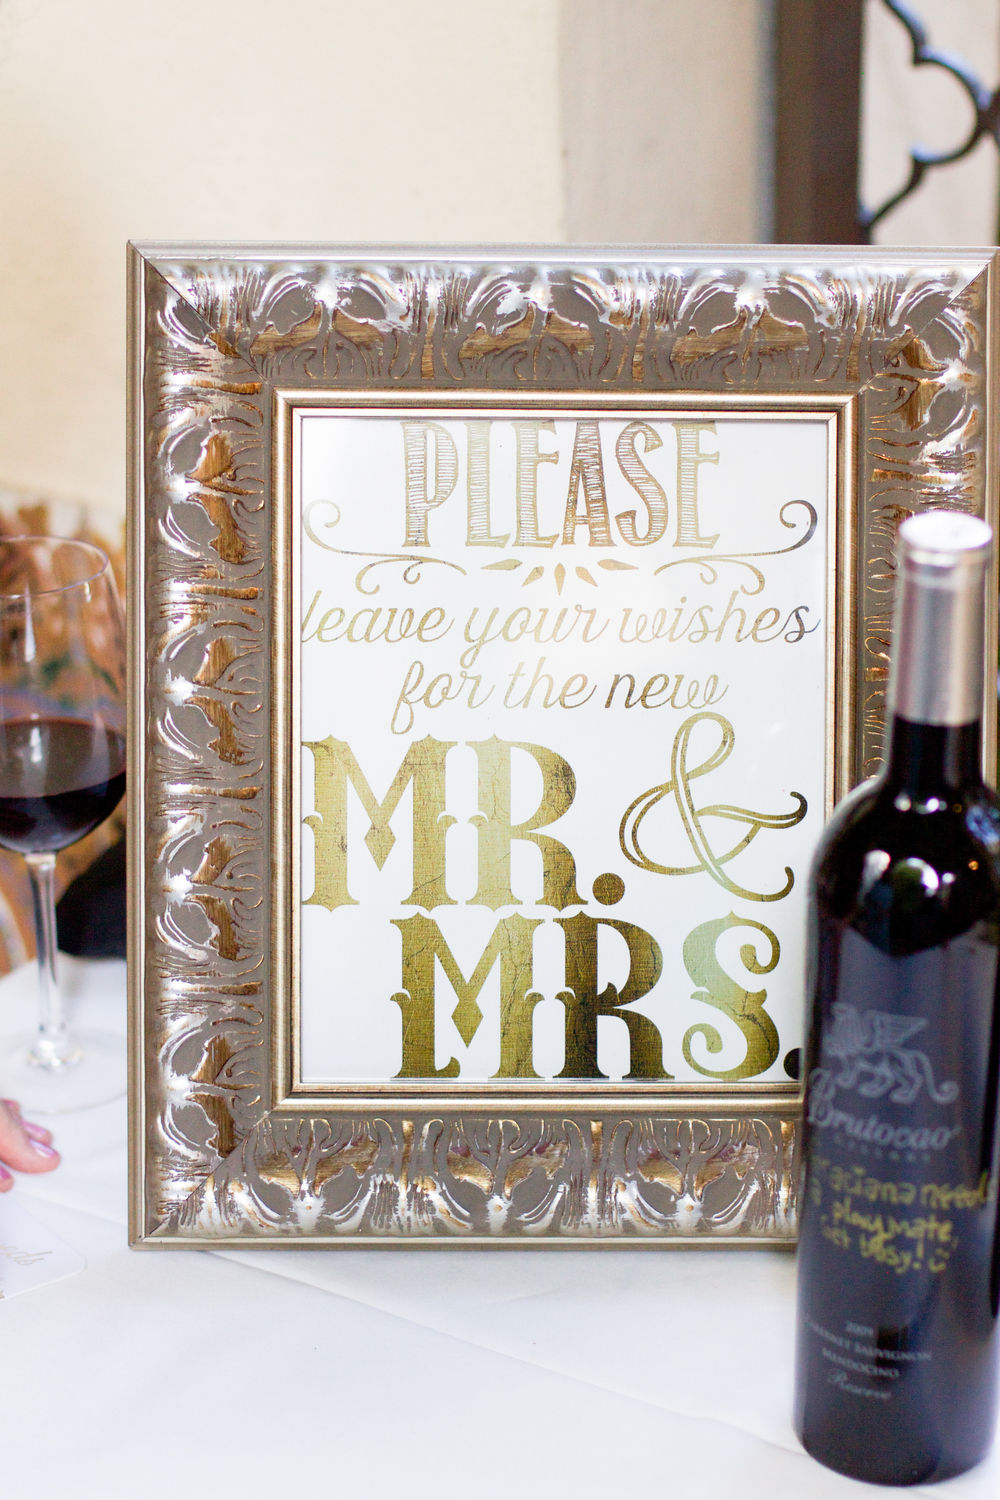 winsor event studio wine bottle guest book wedding